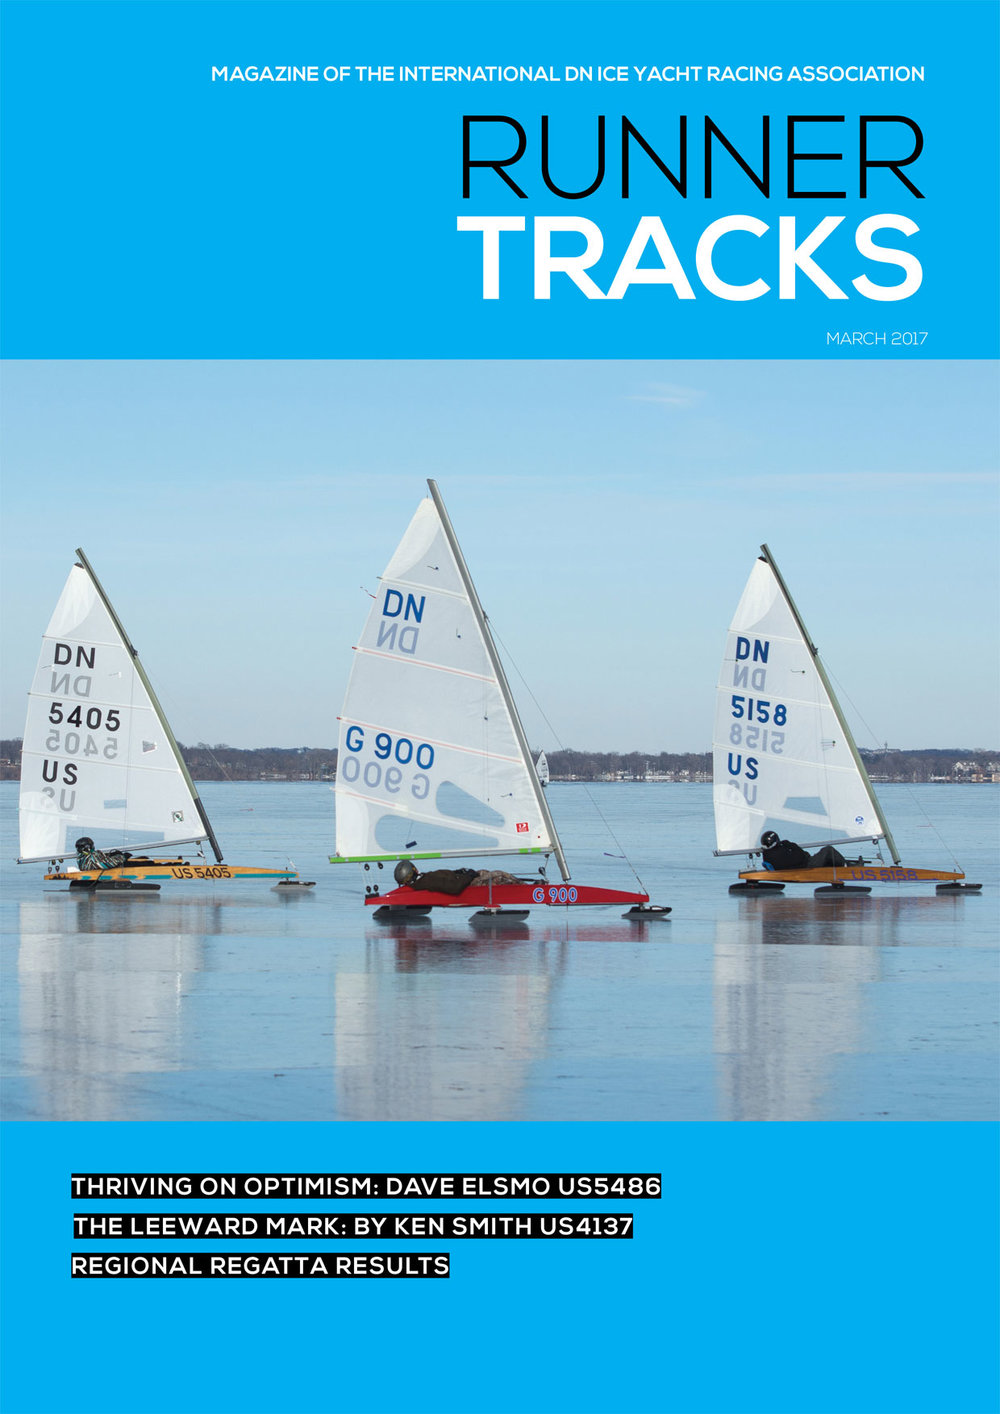 Runner-Tracks-March-2017-cover-website.jpg